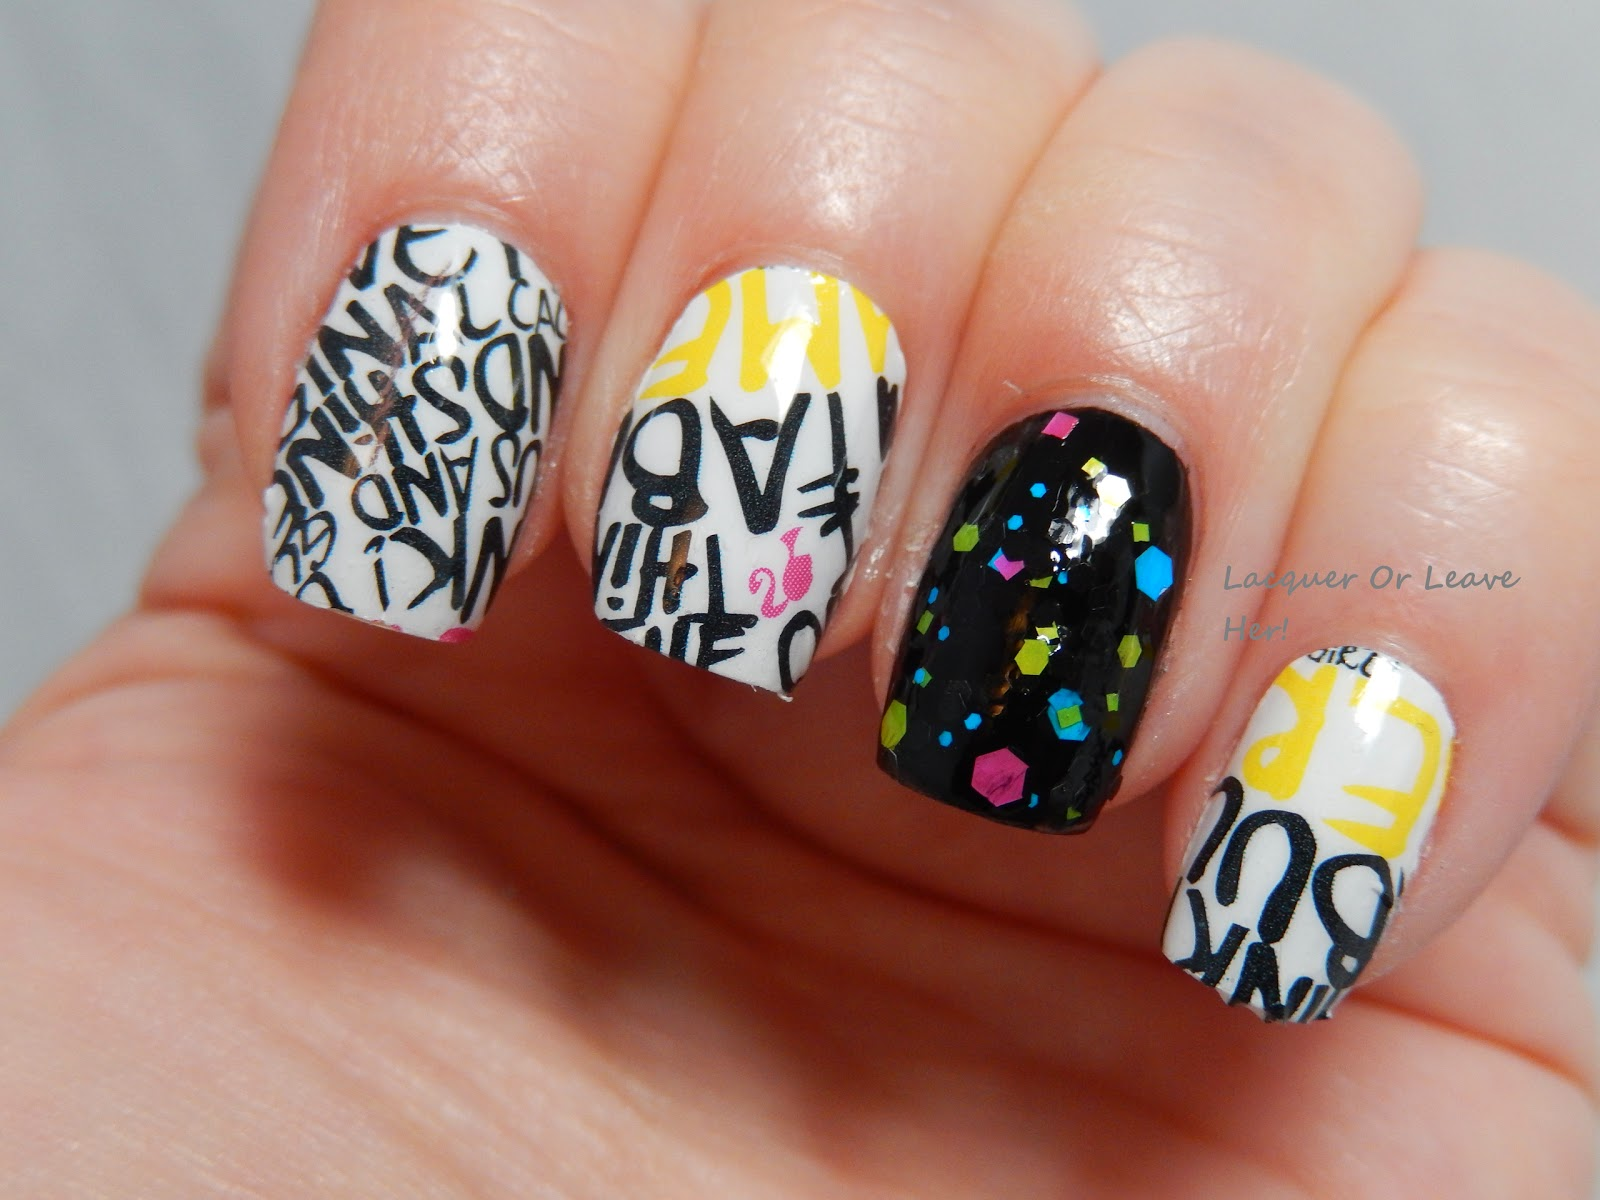 Impulse-cosmetics-eat-my-shorts-born-pretty-store-nail-wraps